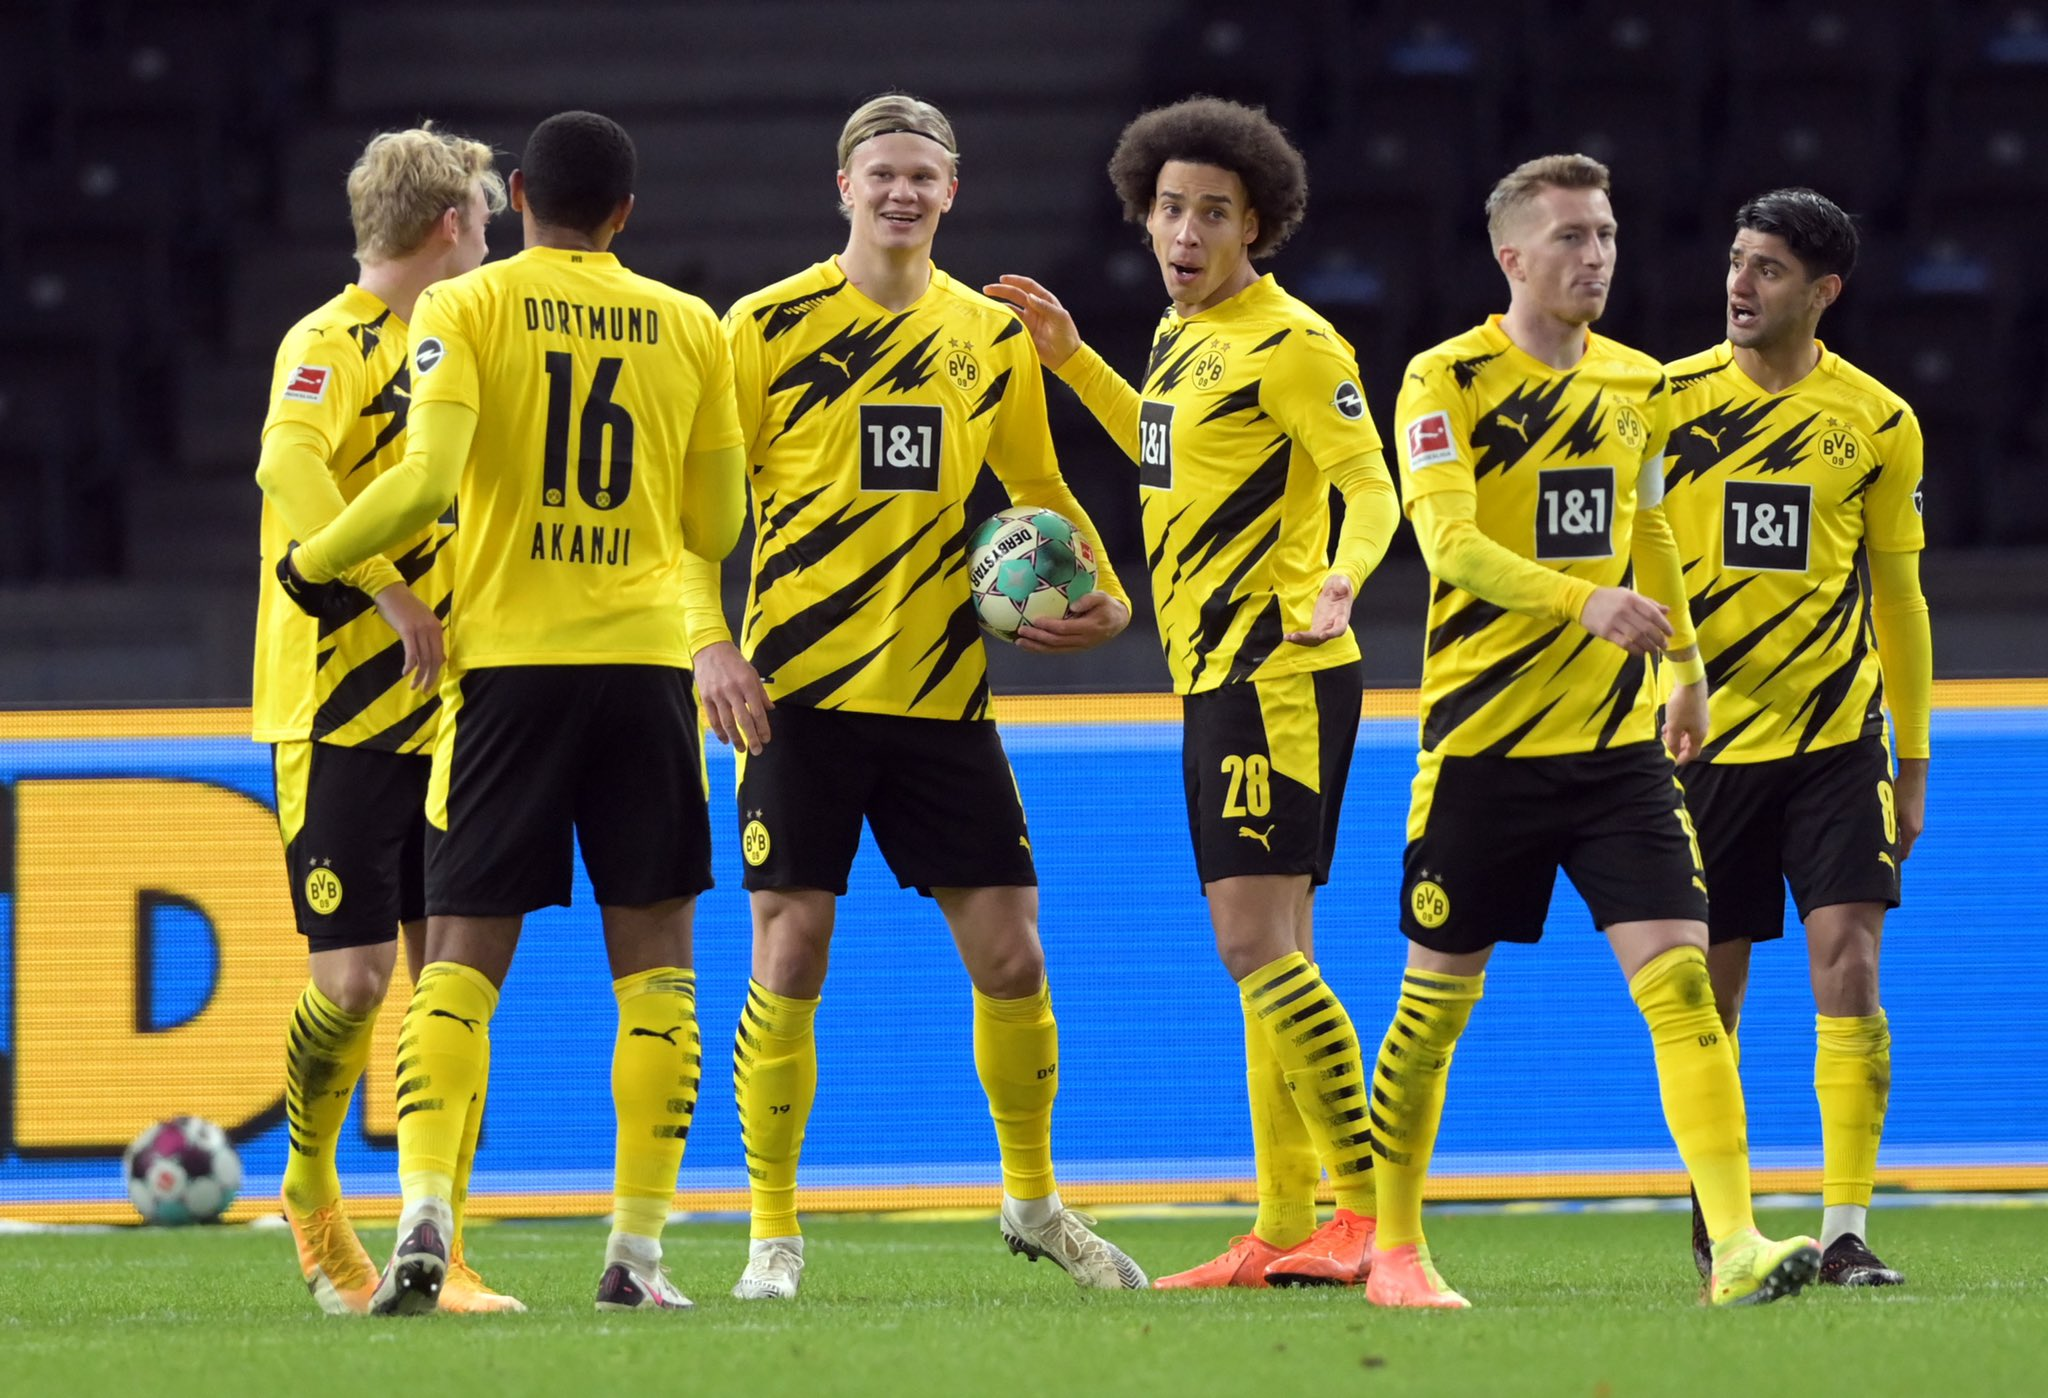 Erling Haaland inspired Borussia Dortmund to yet another win